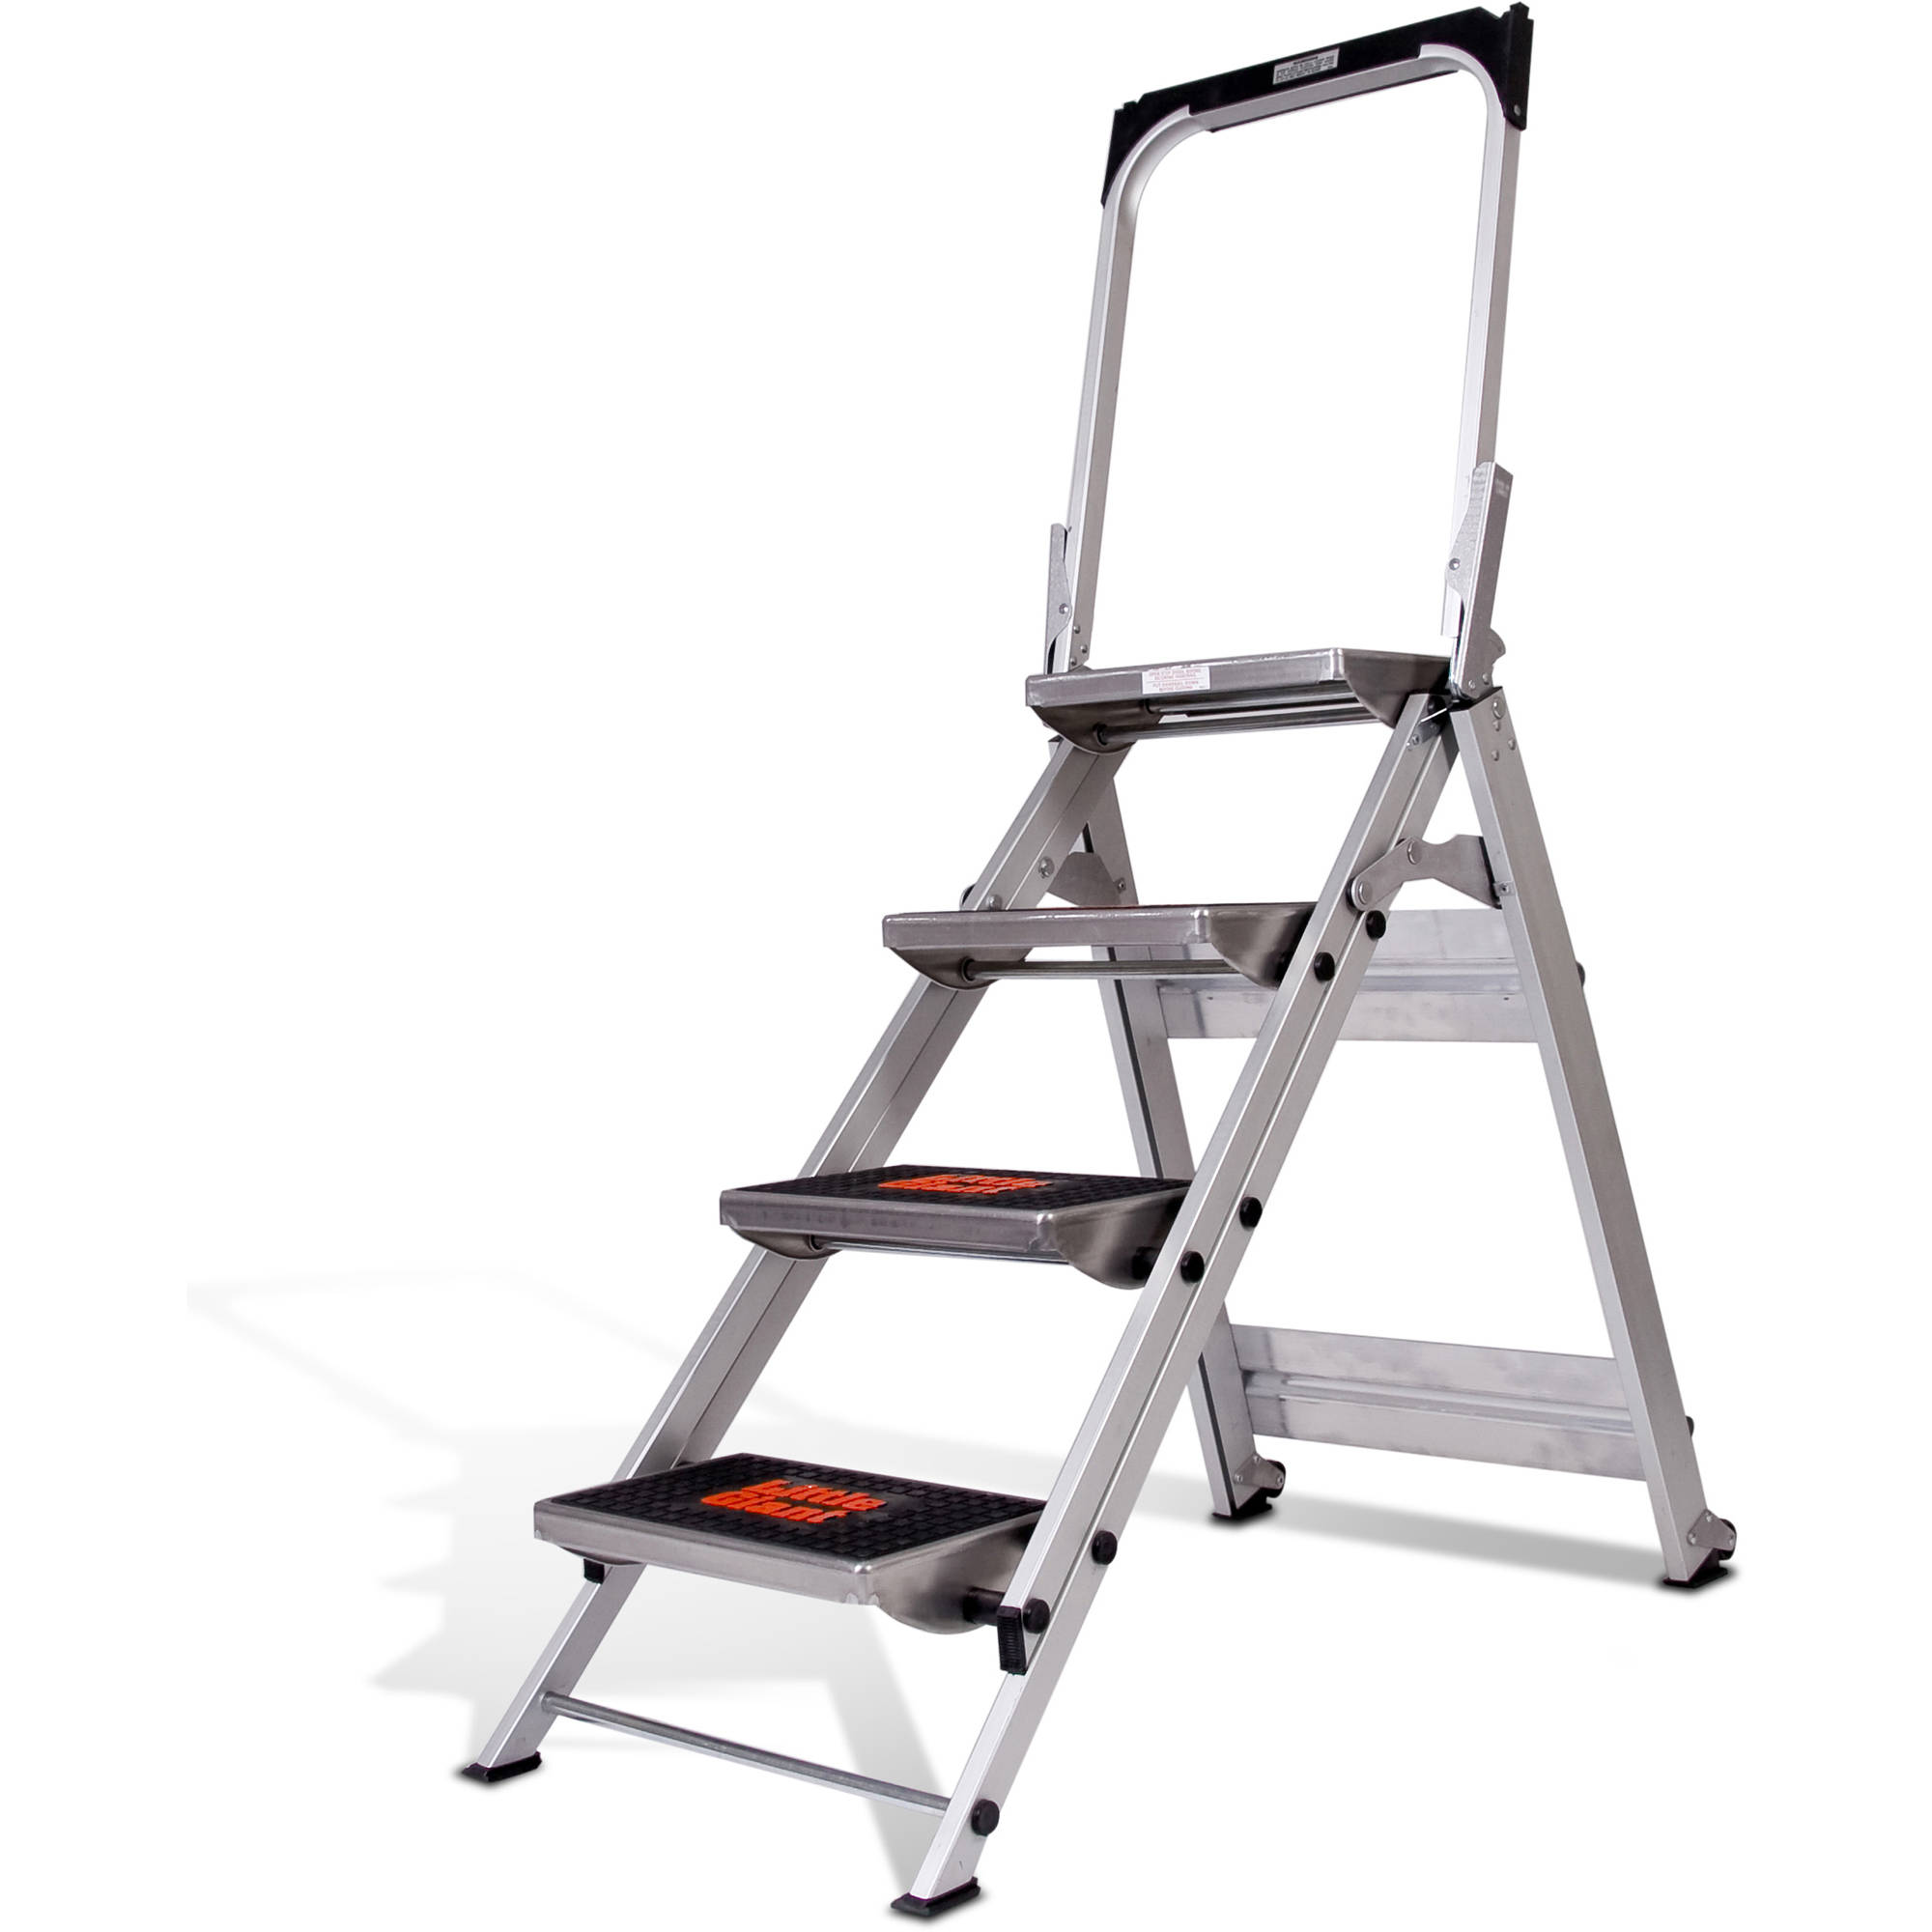 OxGord Heavy Duty Aluminum Folding Scaffold Work Ladder 12.5 Ft Multi Fold  Step Light Weight Multi Purpose Extension   330 LB Capacity   Walmart.com